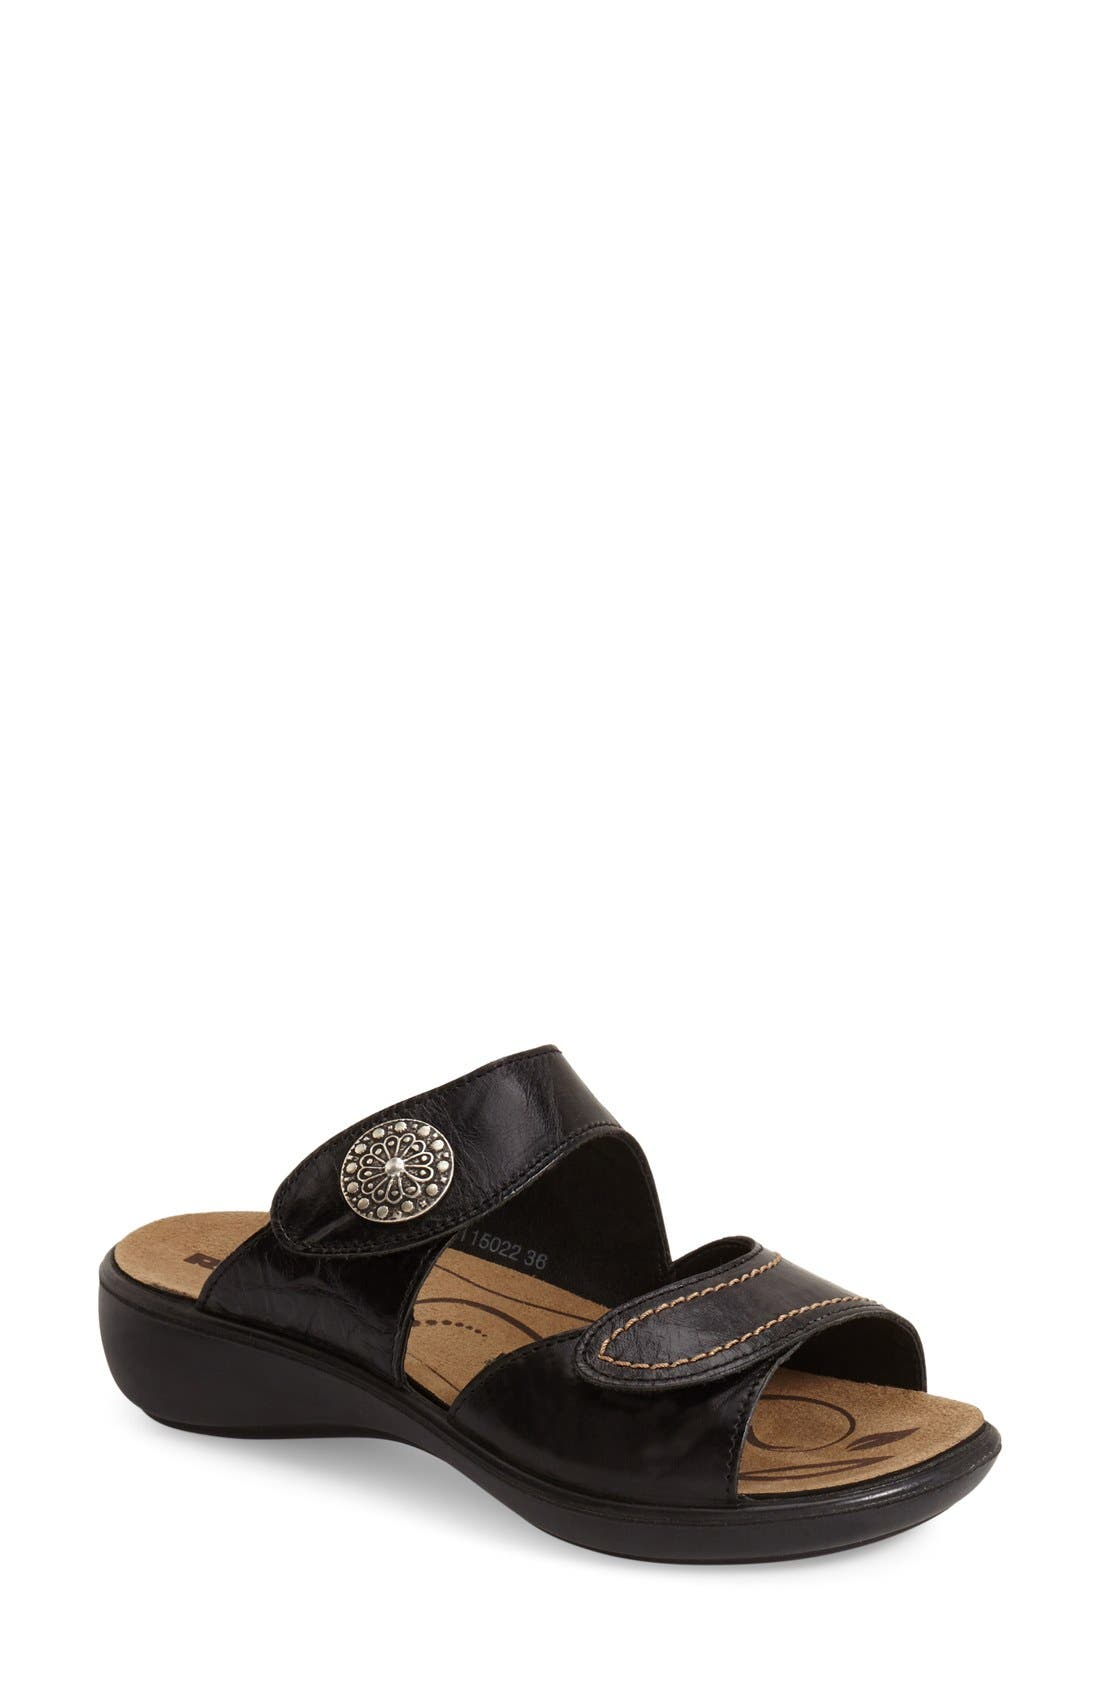 'Ibiza 64' Slide Sandal,                         Main,                         color, 004